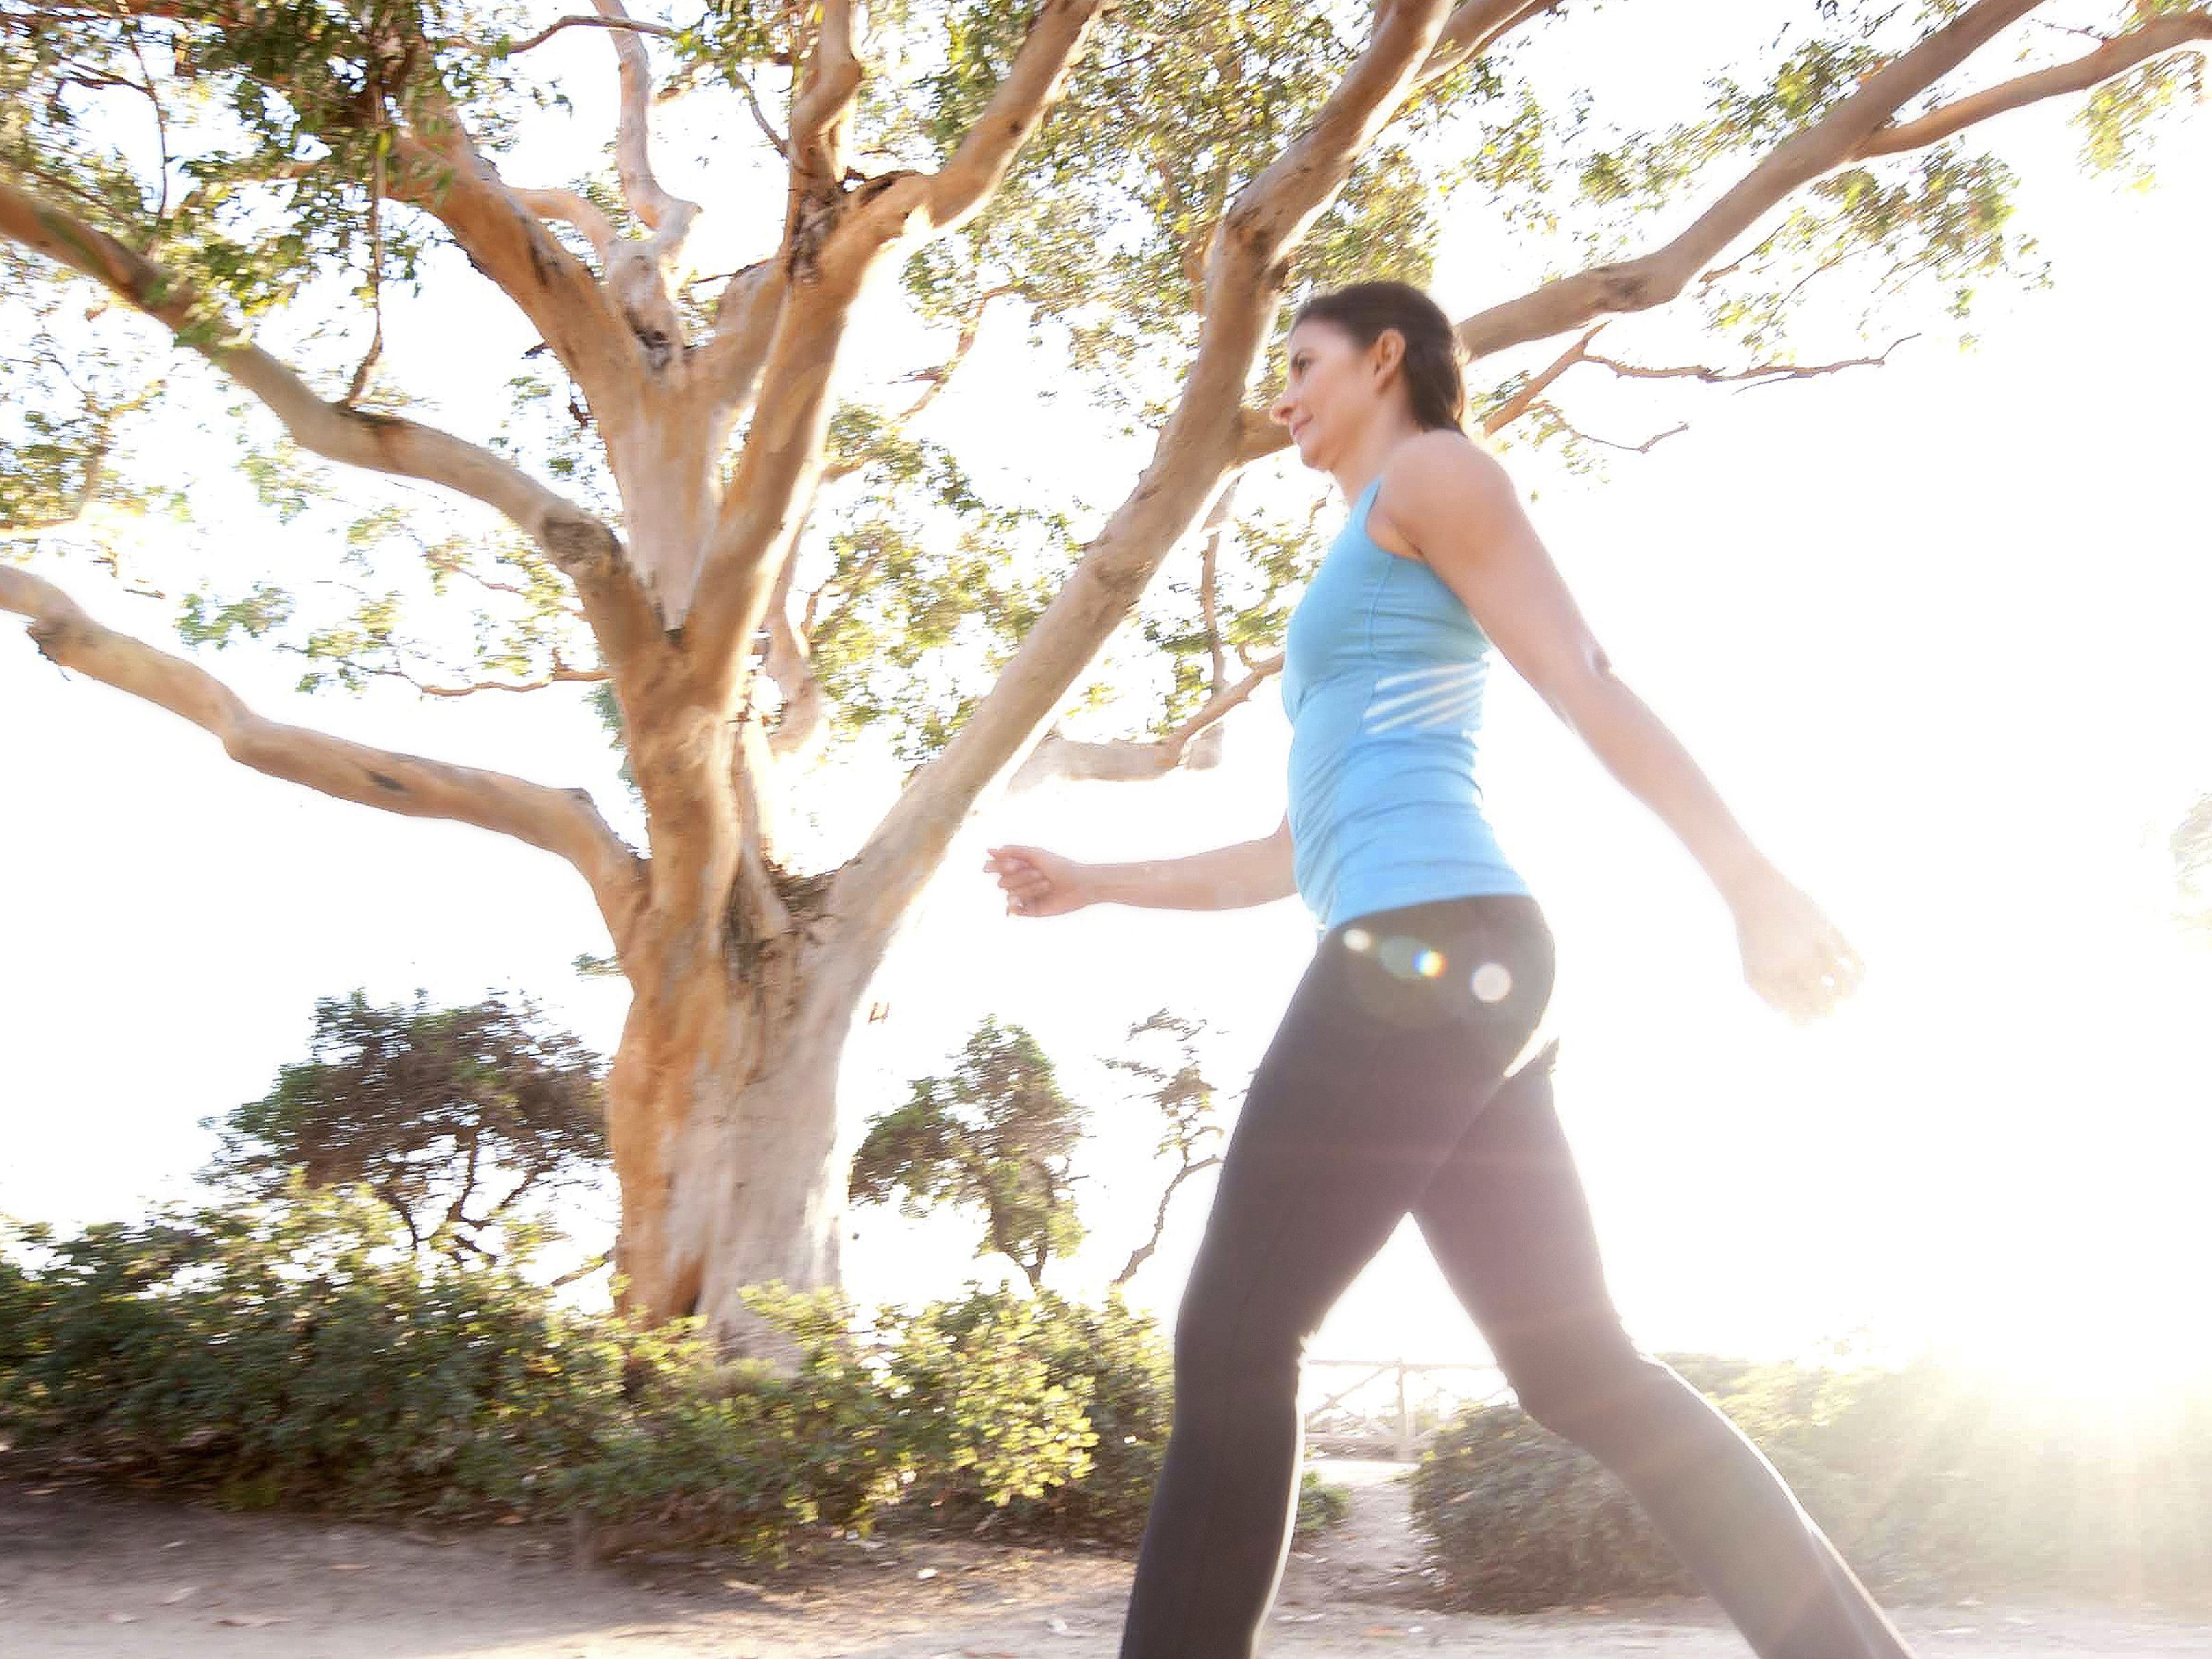 How Many Calories Are Burned Walking per Mile?